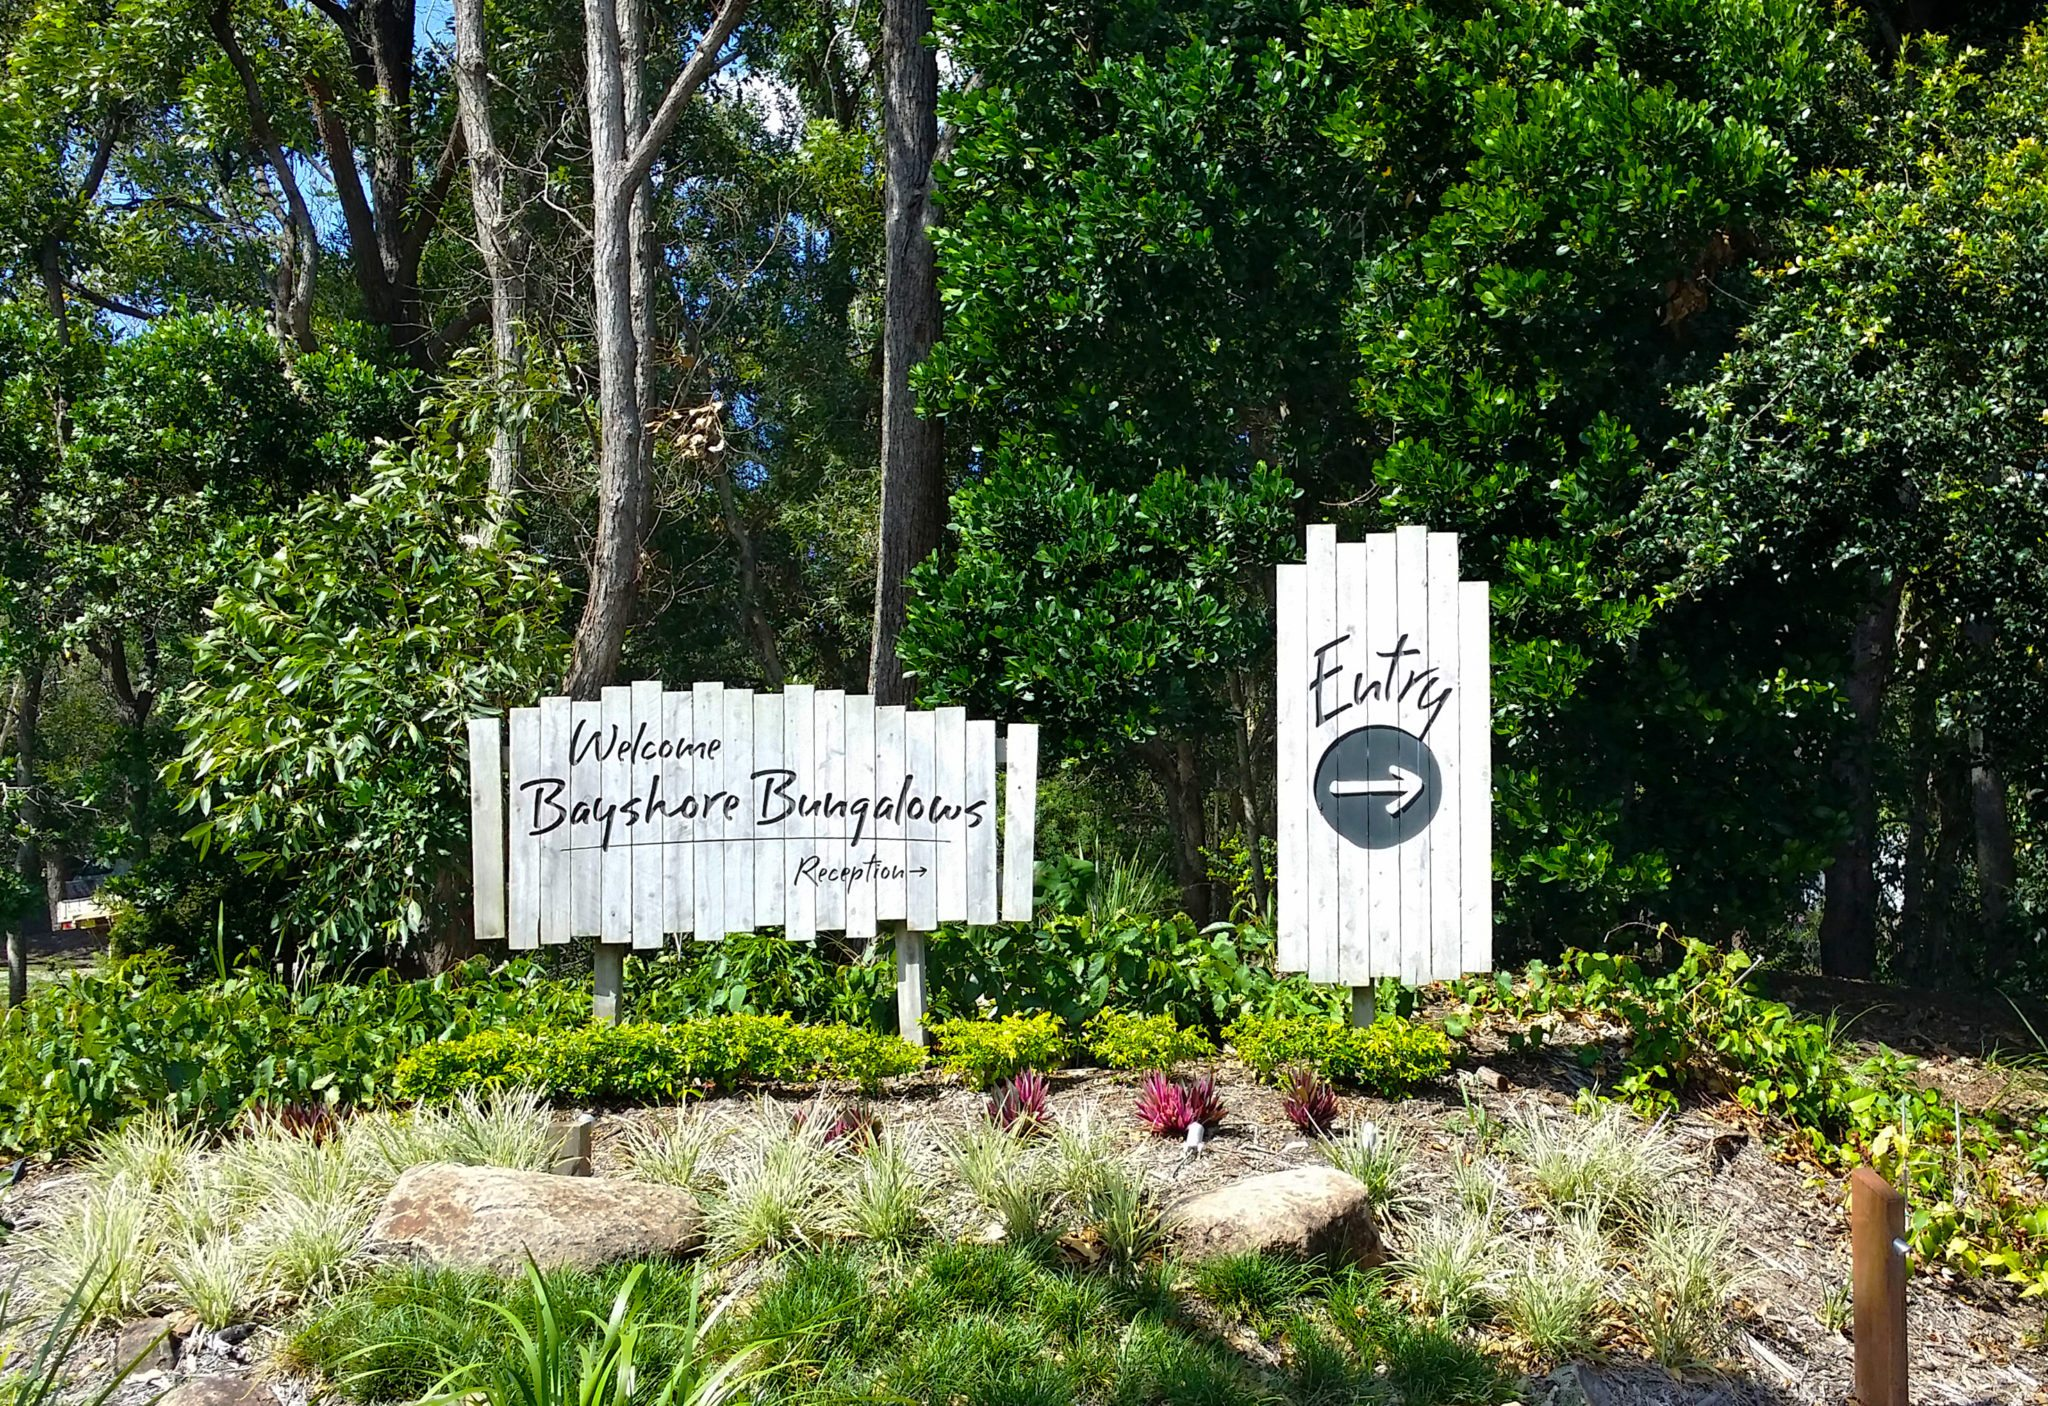 Bayshore, Bungalows, Byron, Bay, road, sign